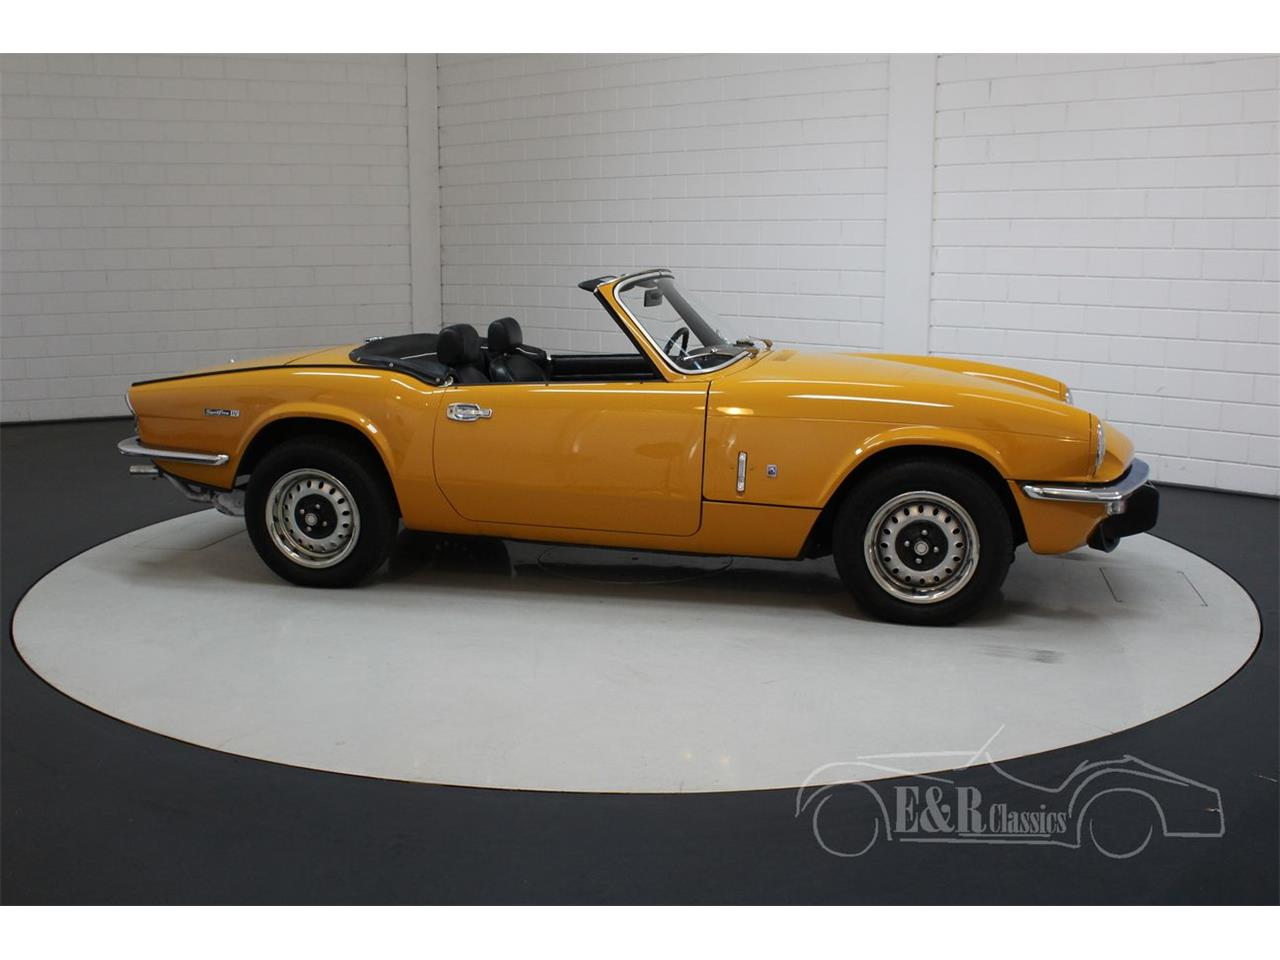 Large Picture of '74 Triumph Spitfire located in Waalwijk Noord-Brabant - $16,850.00 Offered by E & R Classics - QIIQ